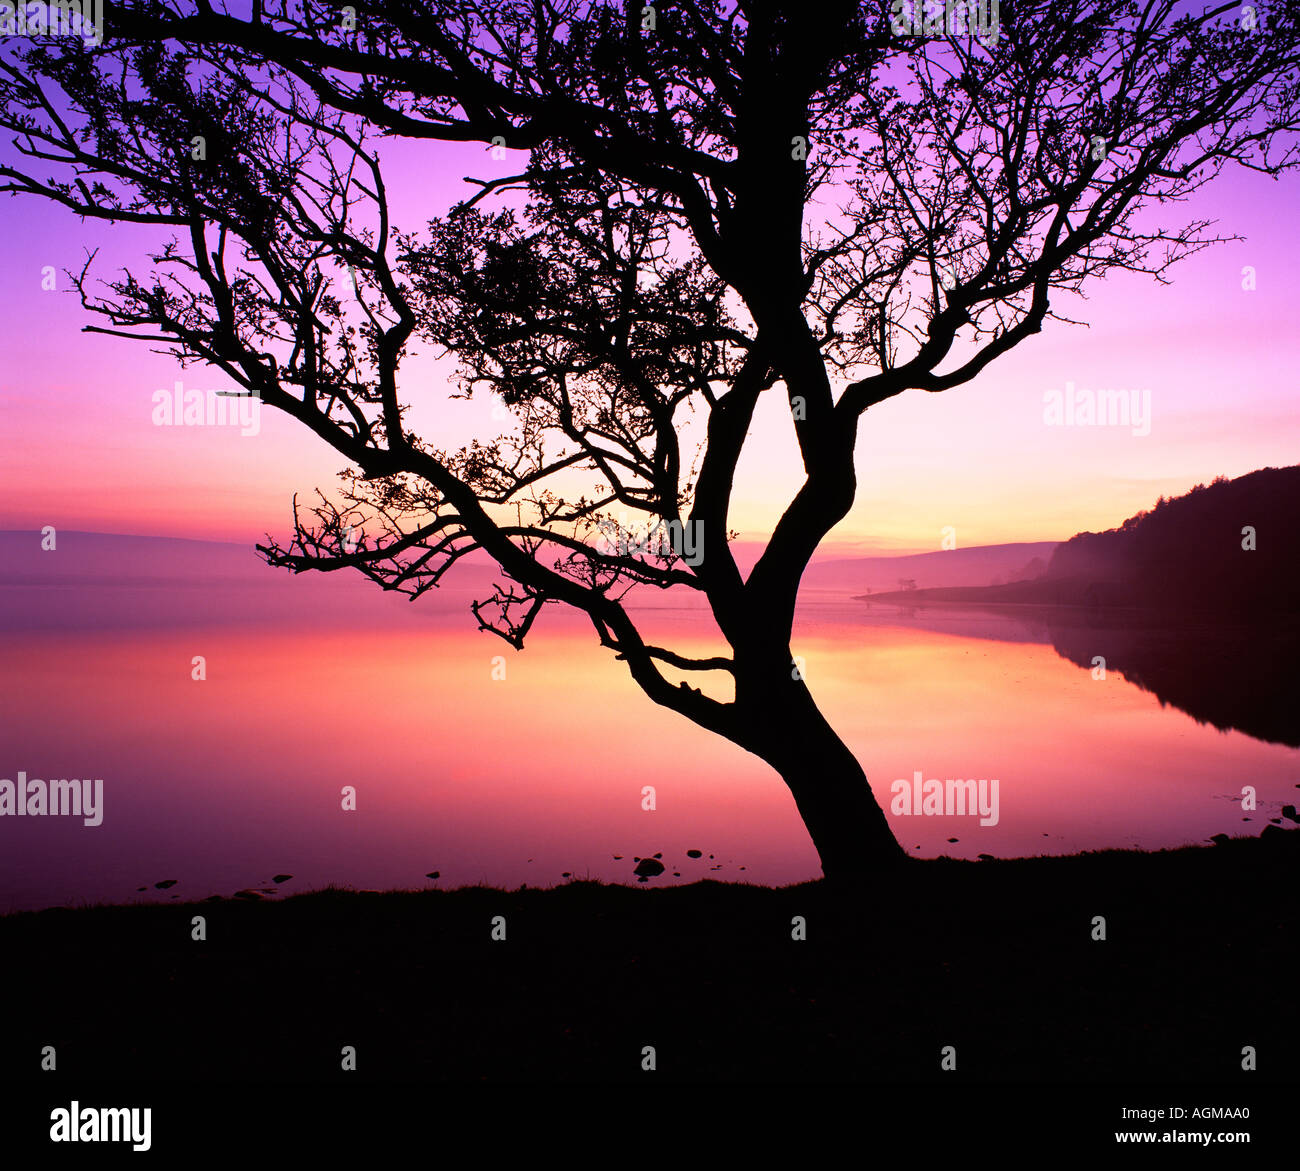 Tree and twilight at Malham Tarn, in the Yorkshire Dales National Park. - Stock Image